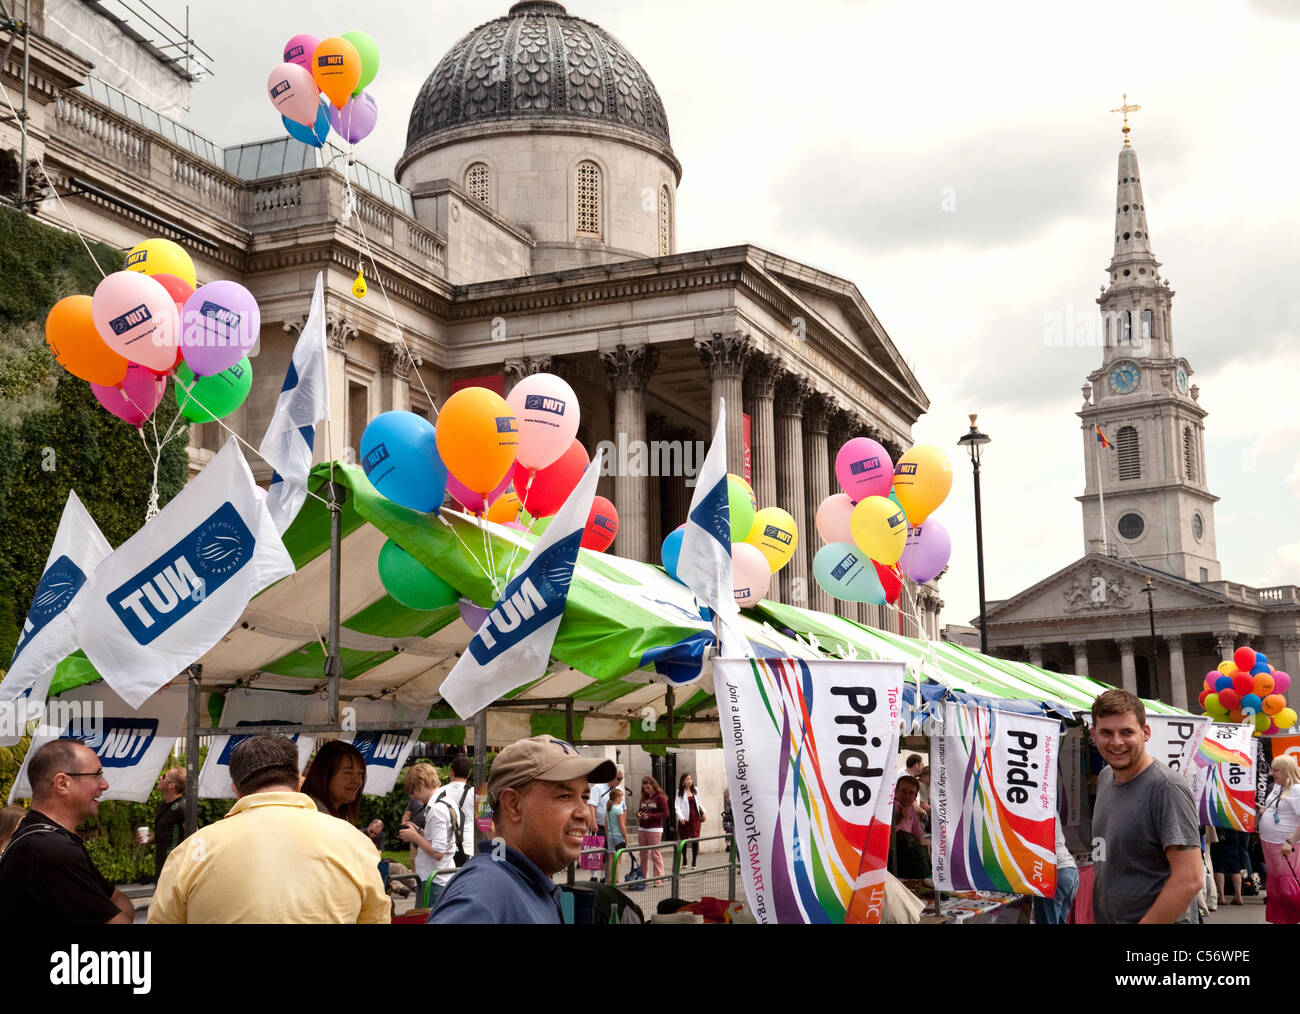 National Union of Teachers (NUT) stall and balloons at the Gay Pride march, Trafalgar Square, London UK 2011 - Stock Image